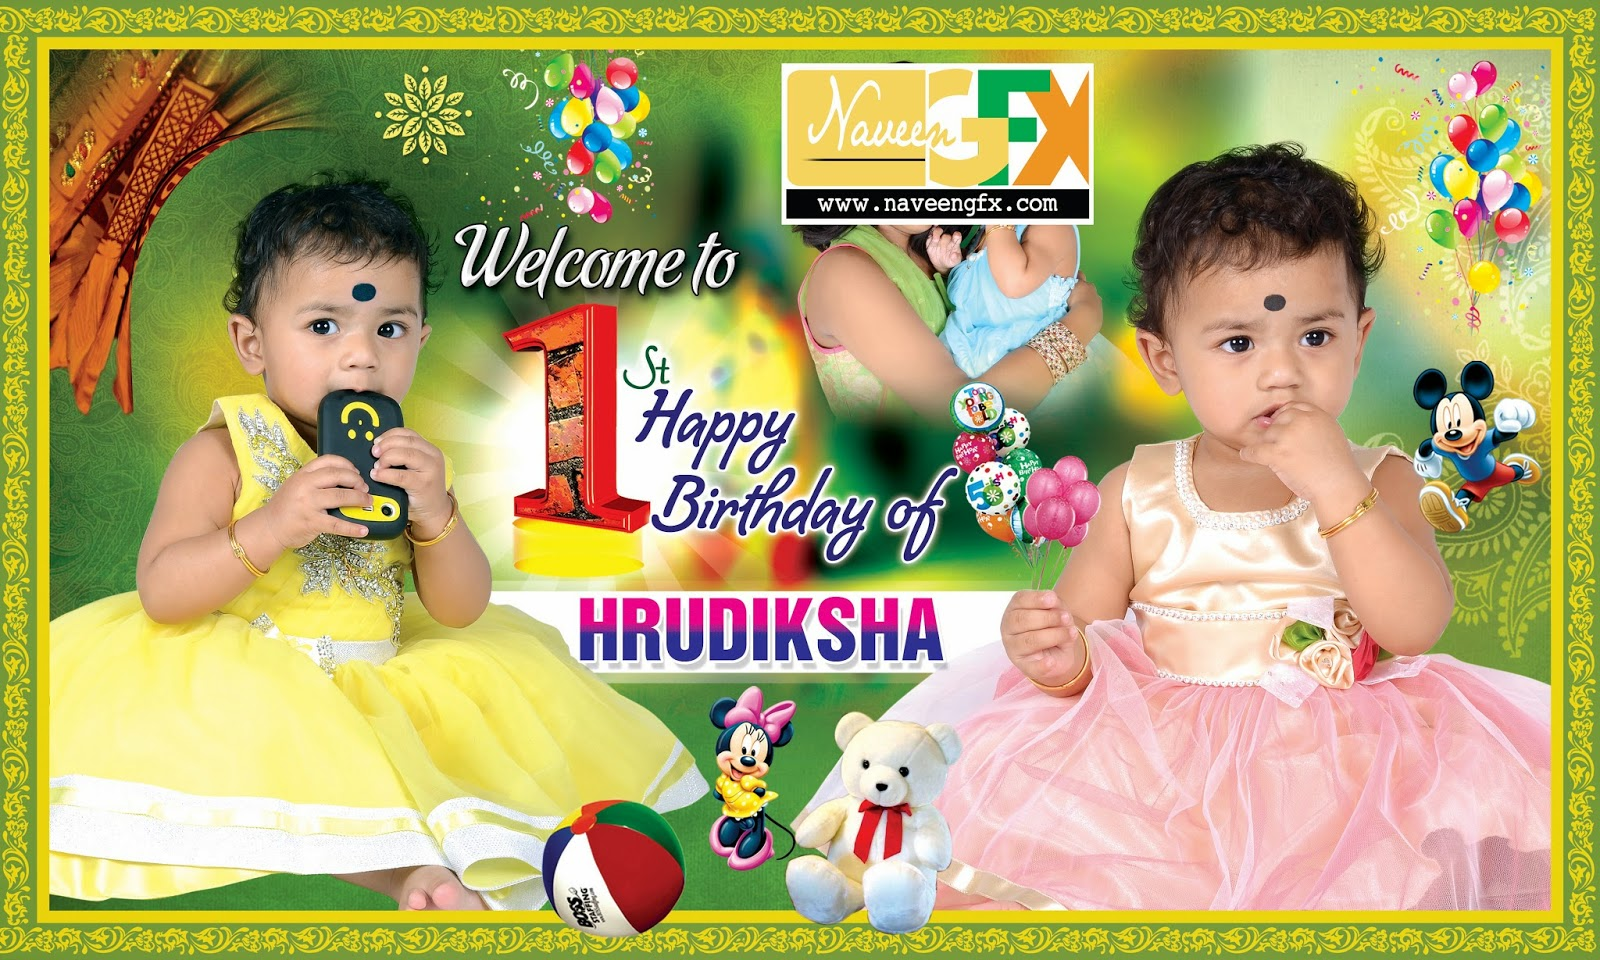 1st birthday banner background design ; 070ffb8be0a0aa8d29908dd66c3ffb10